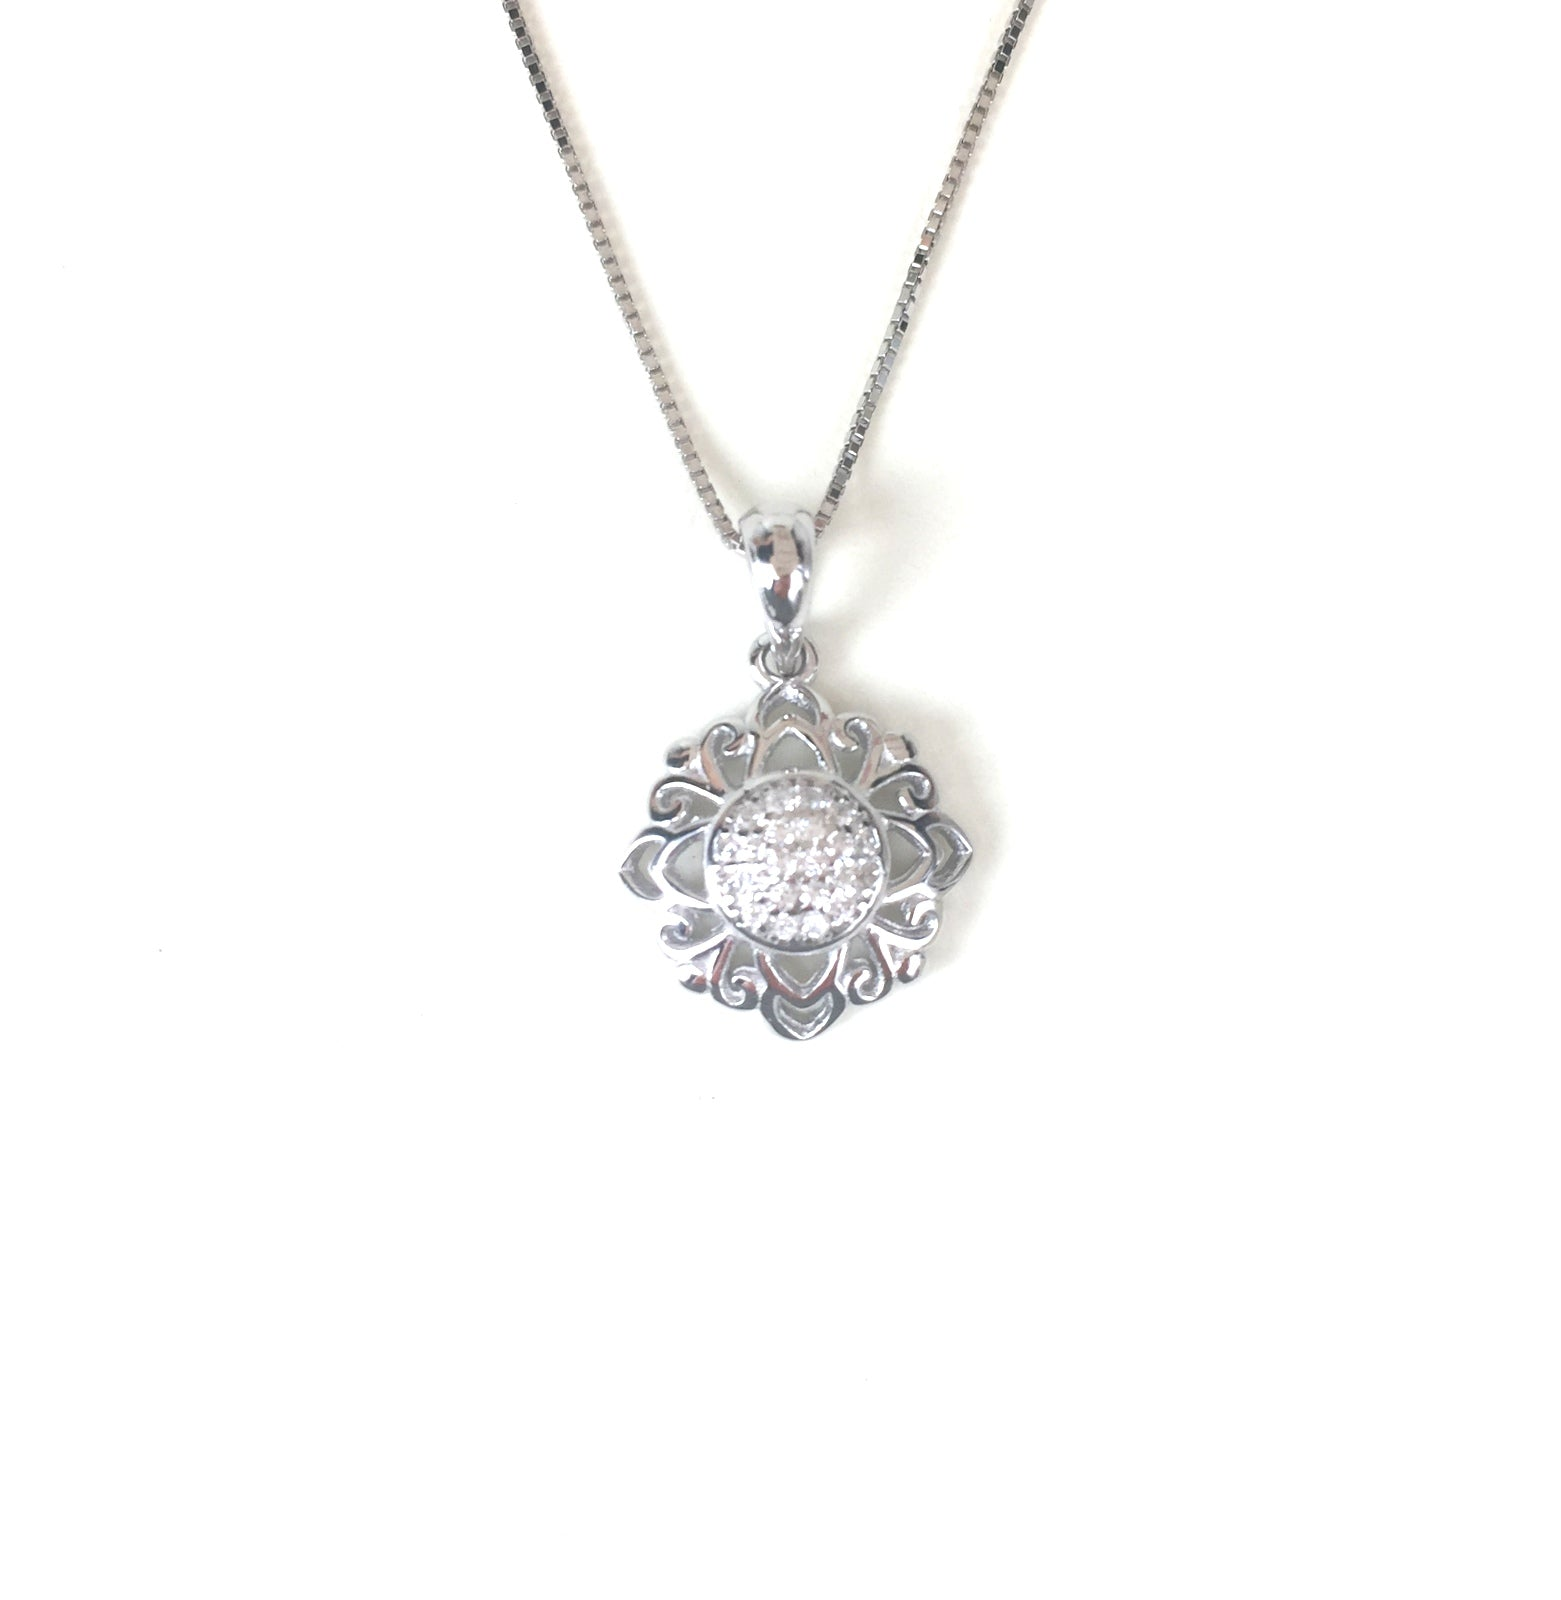 SPARKLING FLOWER 2 PAVE CZ STERLING SILVER NECKLACE